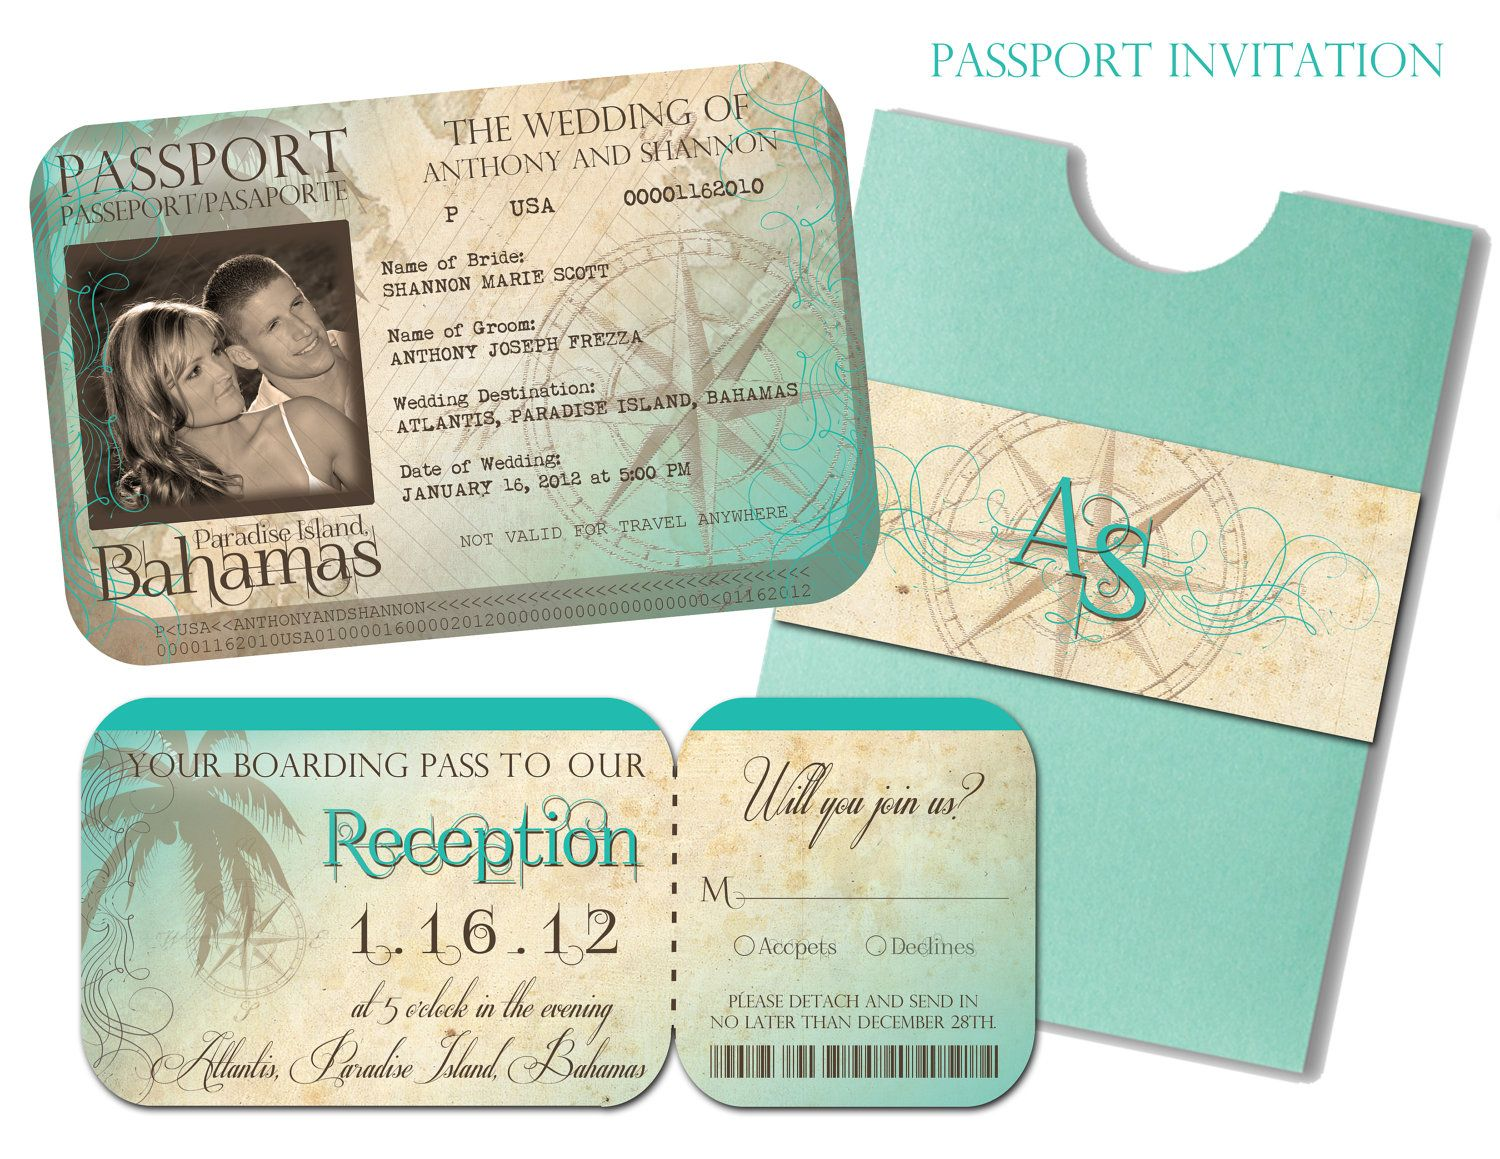 Passport Wedding Invitation and Boarding Pass Reception and RSVP ...